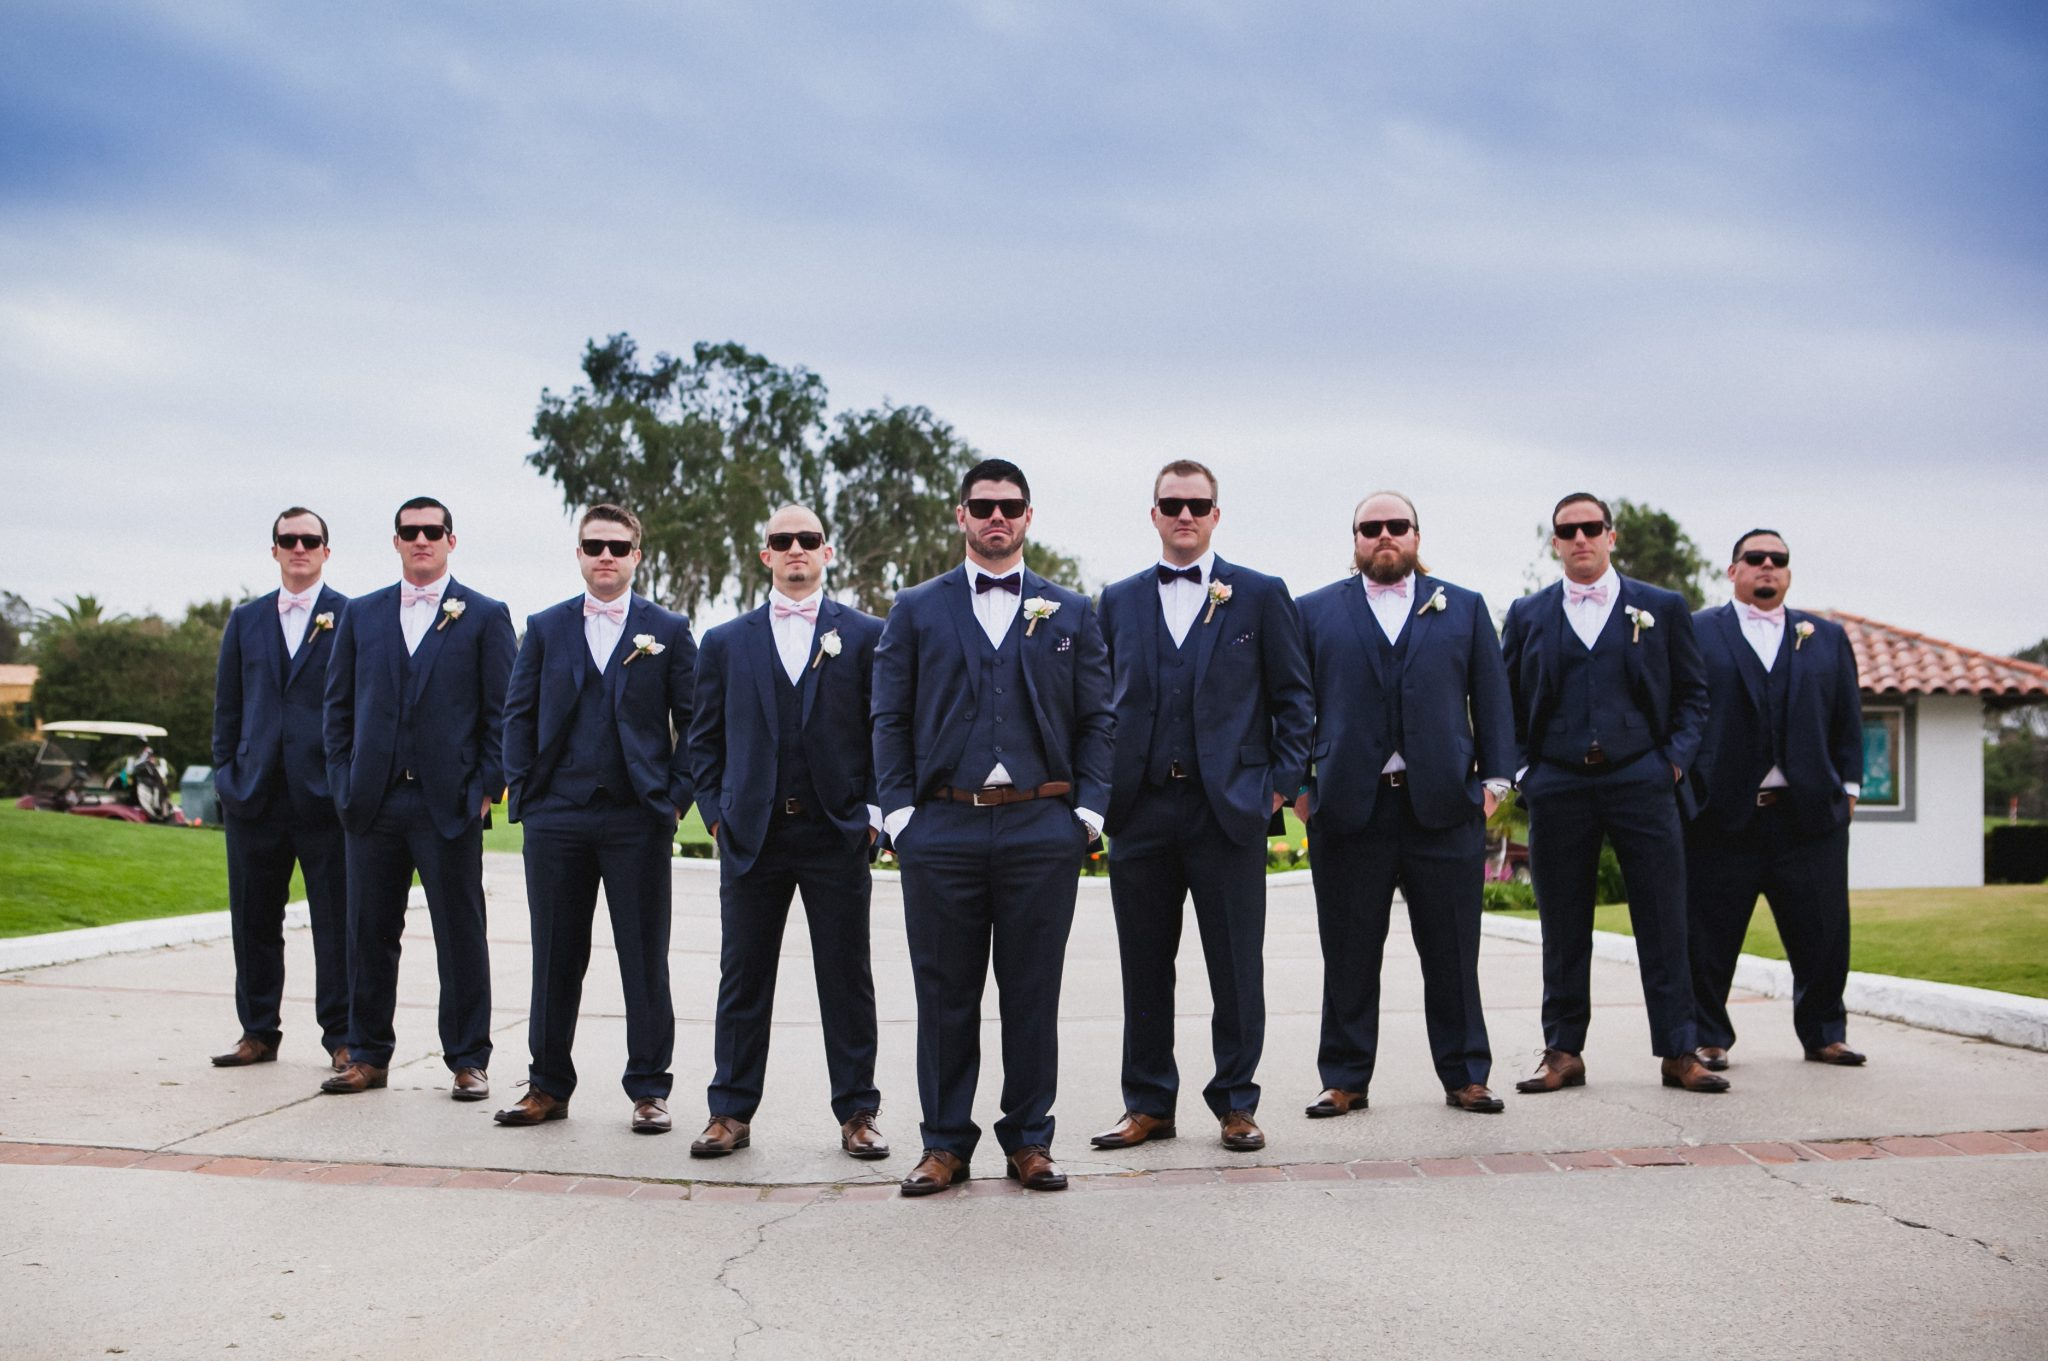 Groom and groomsmen wearing Men's Warehouse suits and sunglasses